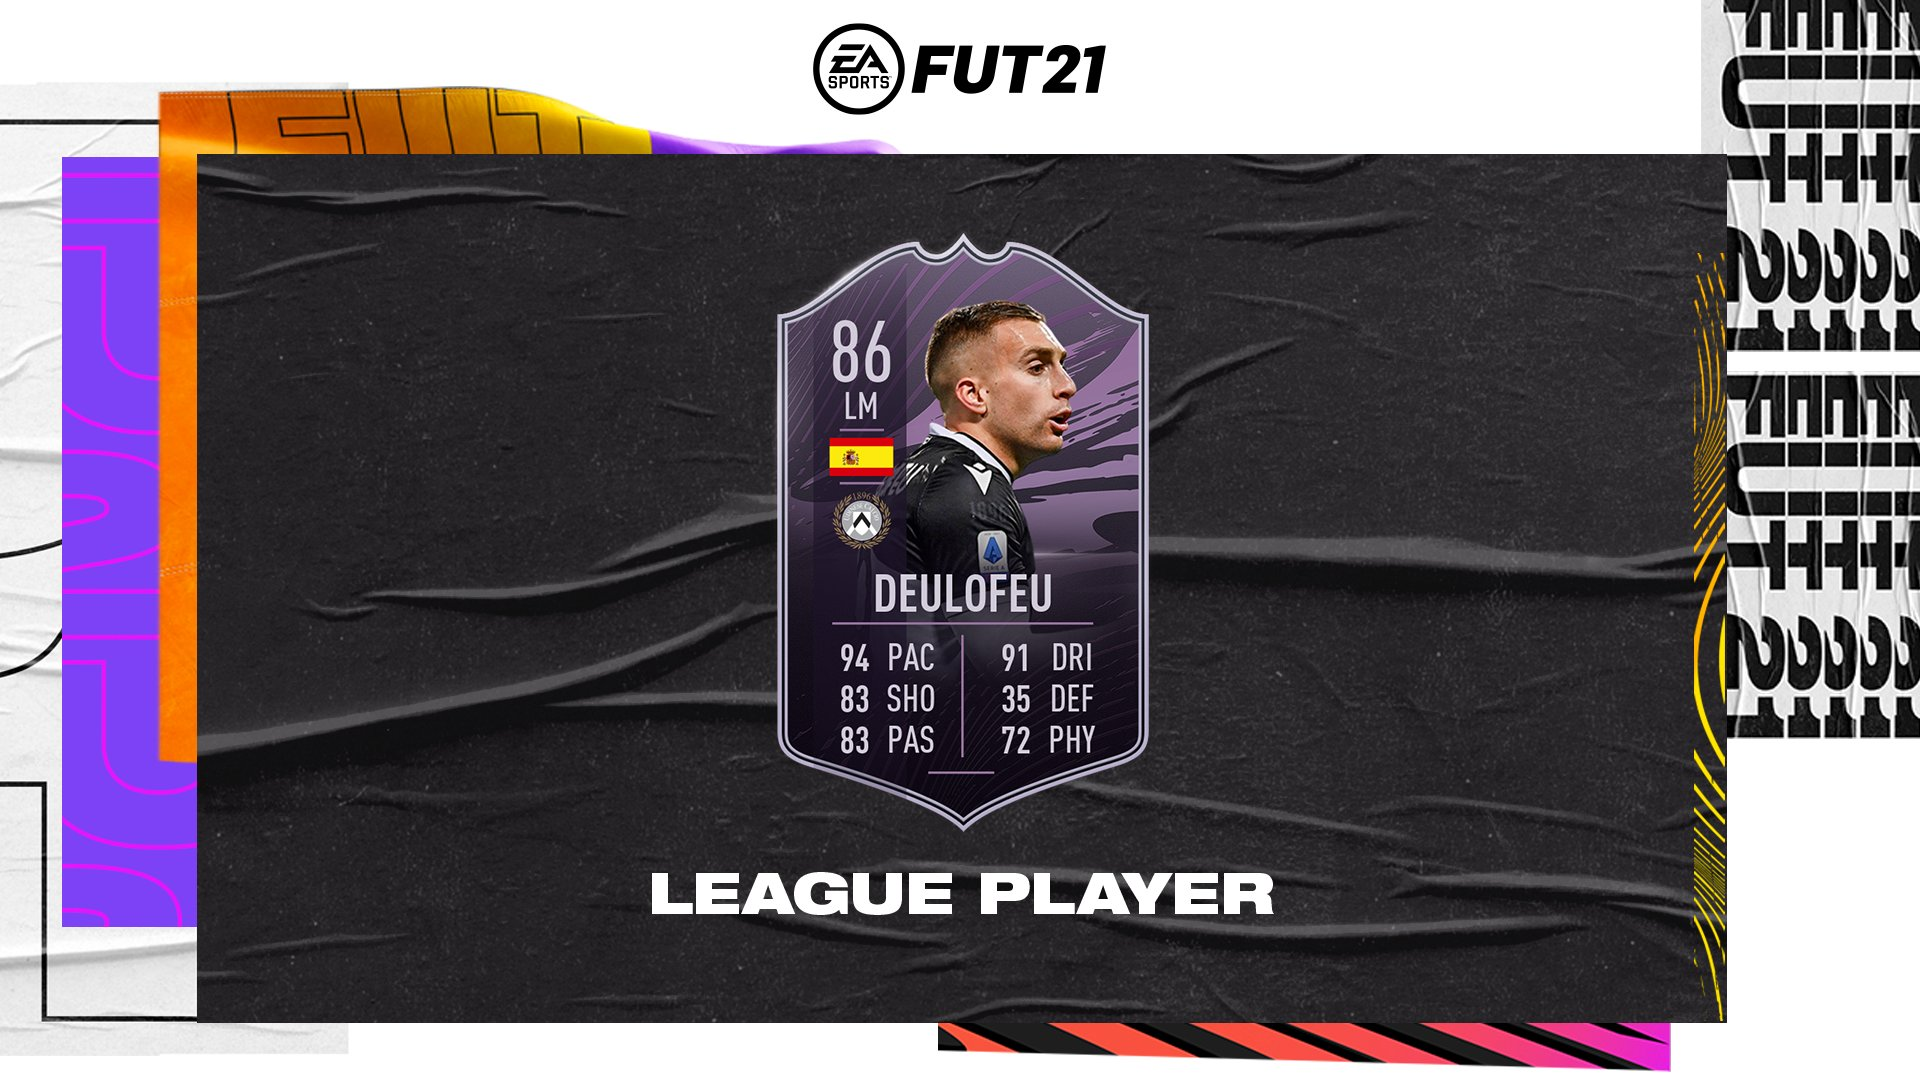 Deulofeu League Player FIFA 21